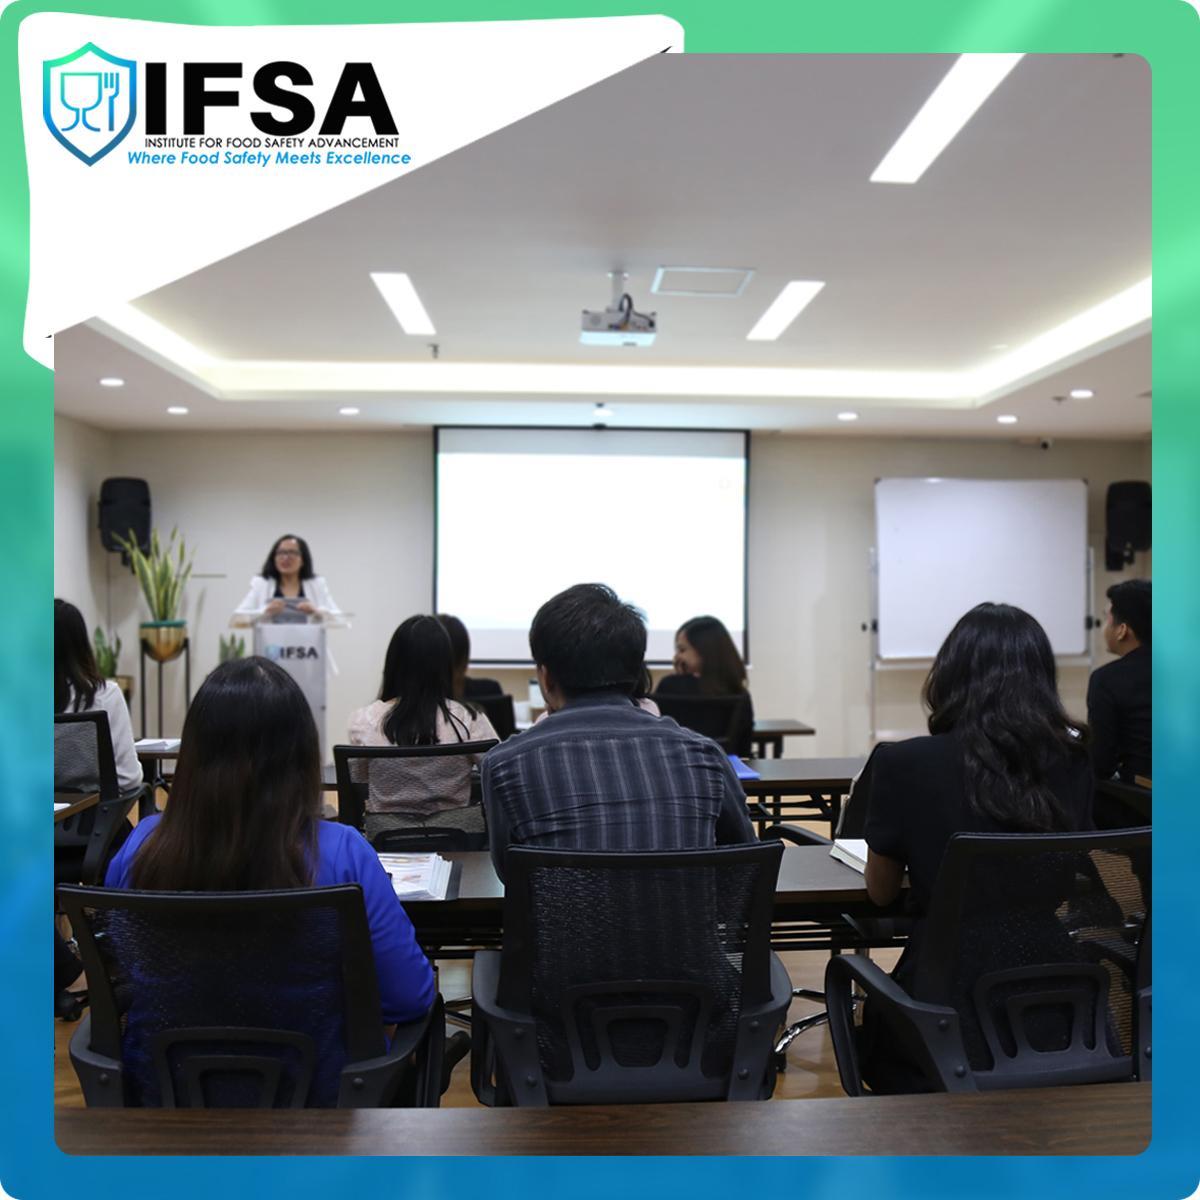 Institute for Food Safety Advancement